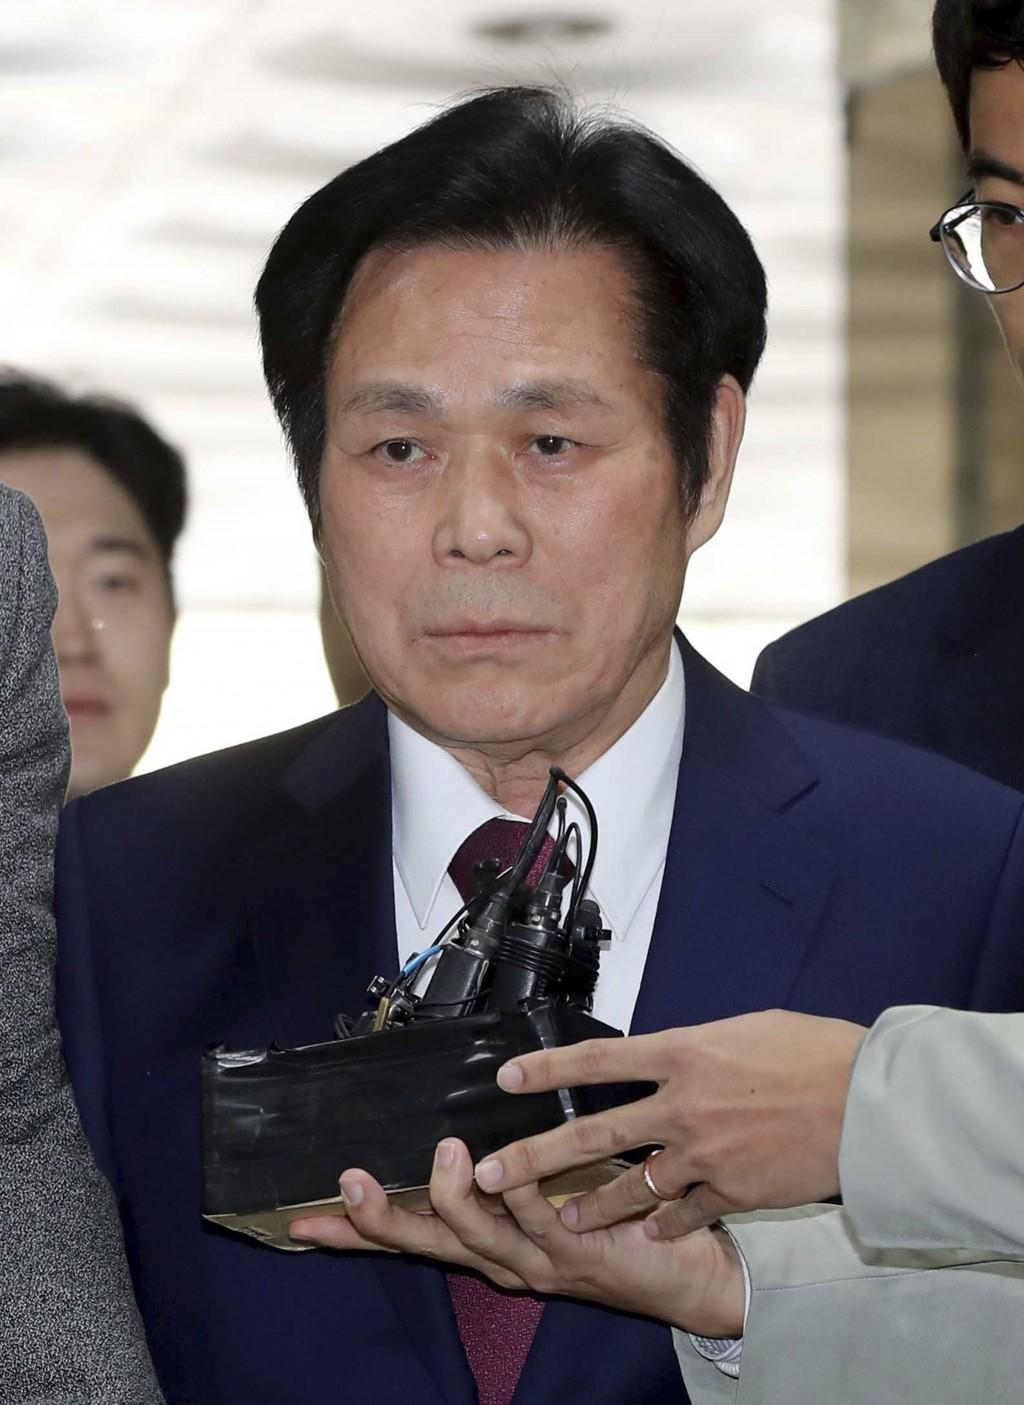 In this May 3, 2018 photo, A South Korean pastor Lee Jae-rock arrives for hearing at the Seoul Central District Court in Seoul, South Korea. Lee has b